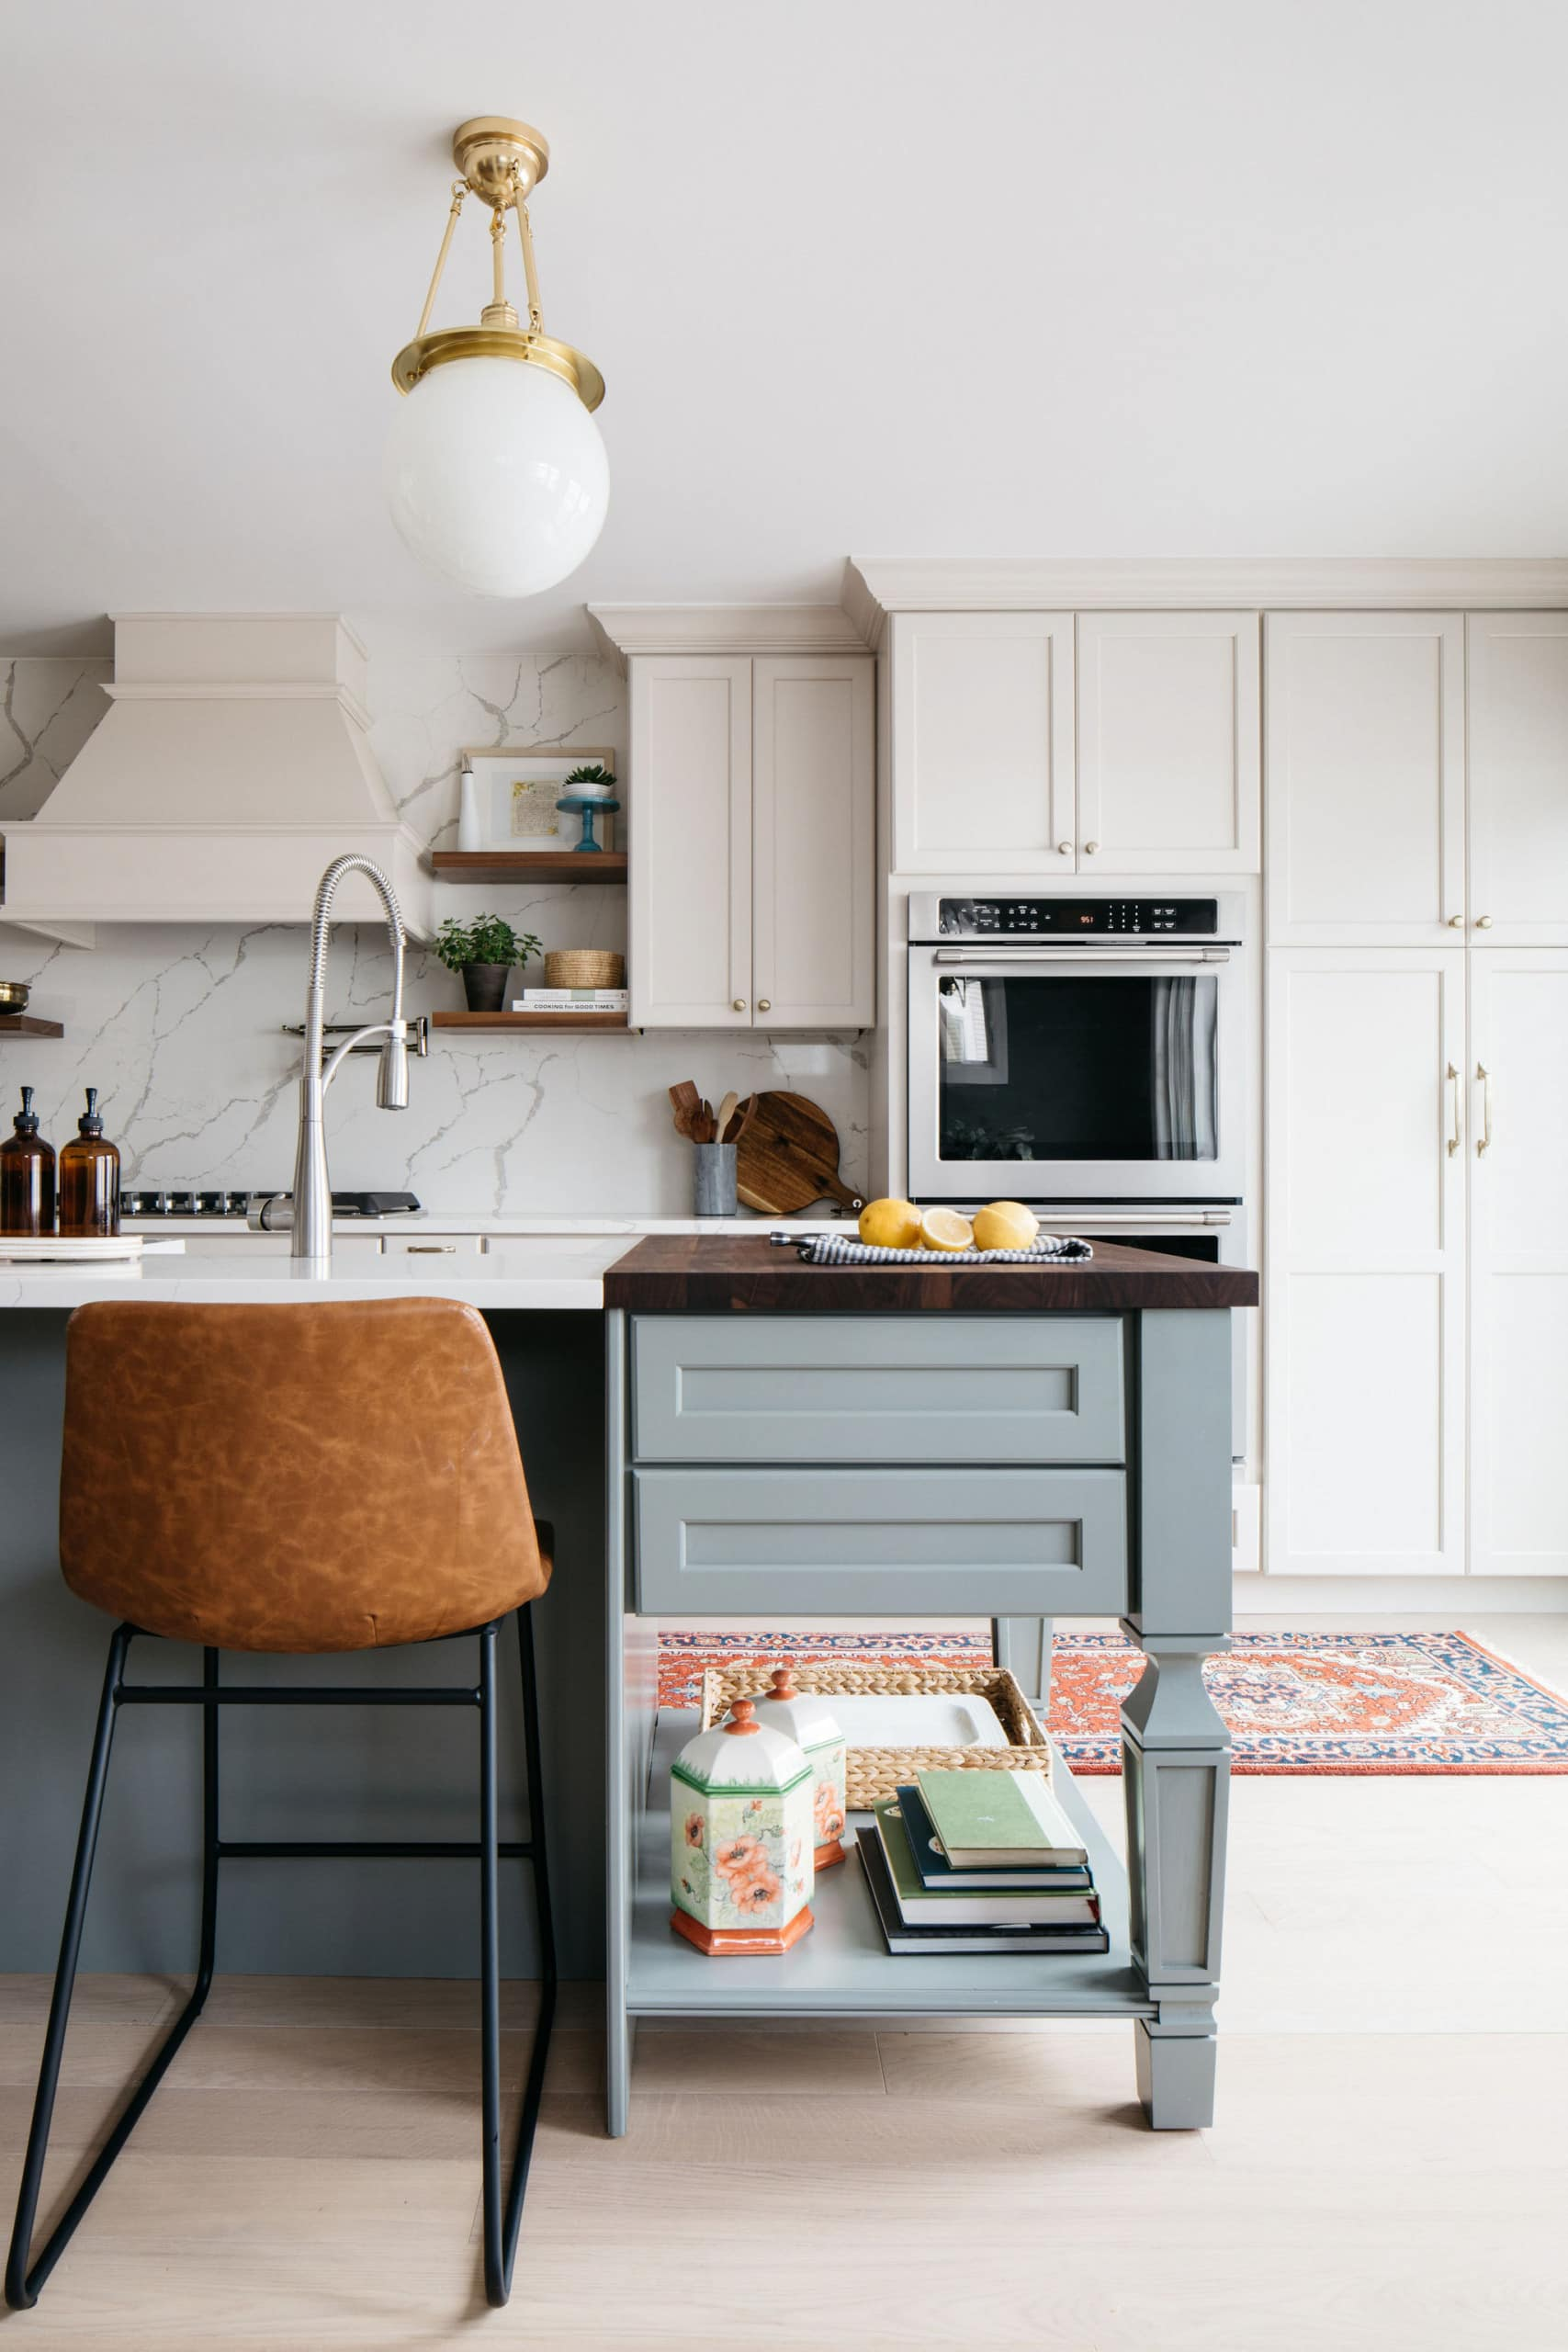 Choosing kitchen lighting